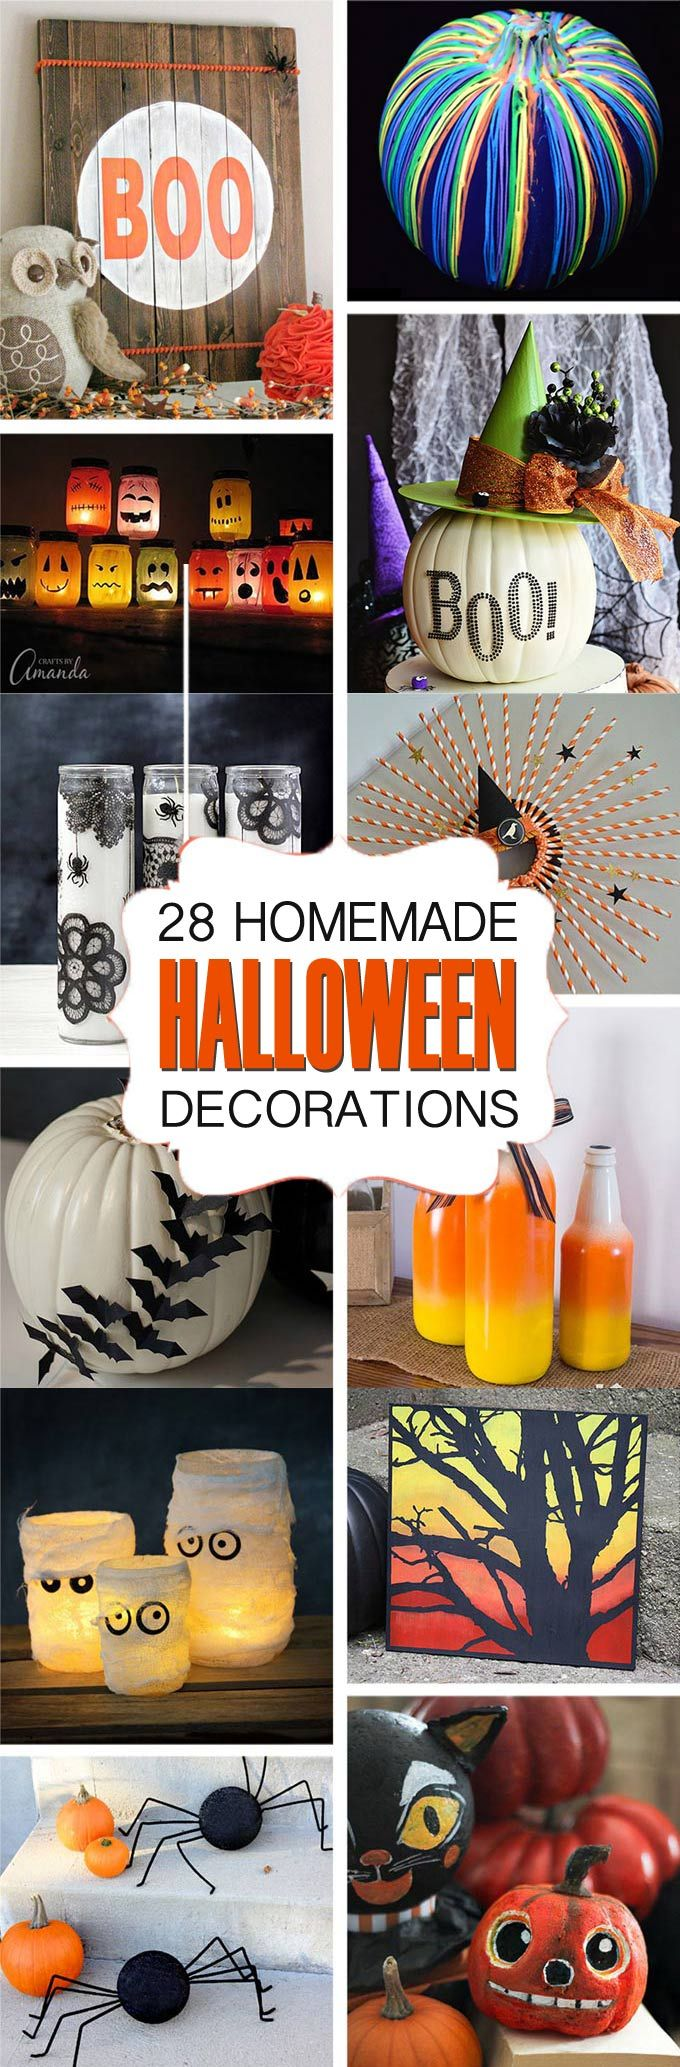 28 homemade halloween decorations if you are looking for crafty ways to decorate for halloween - At Home Halloween Decorations